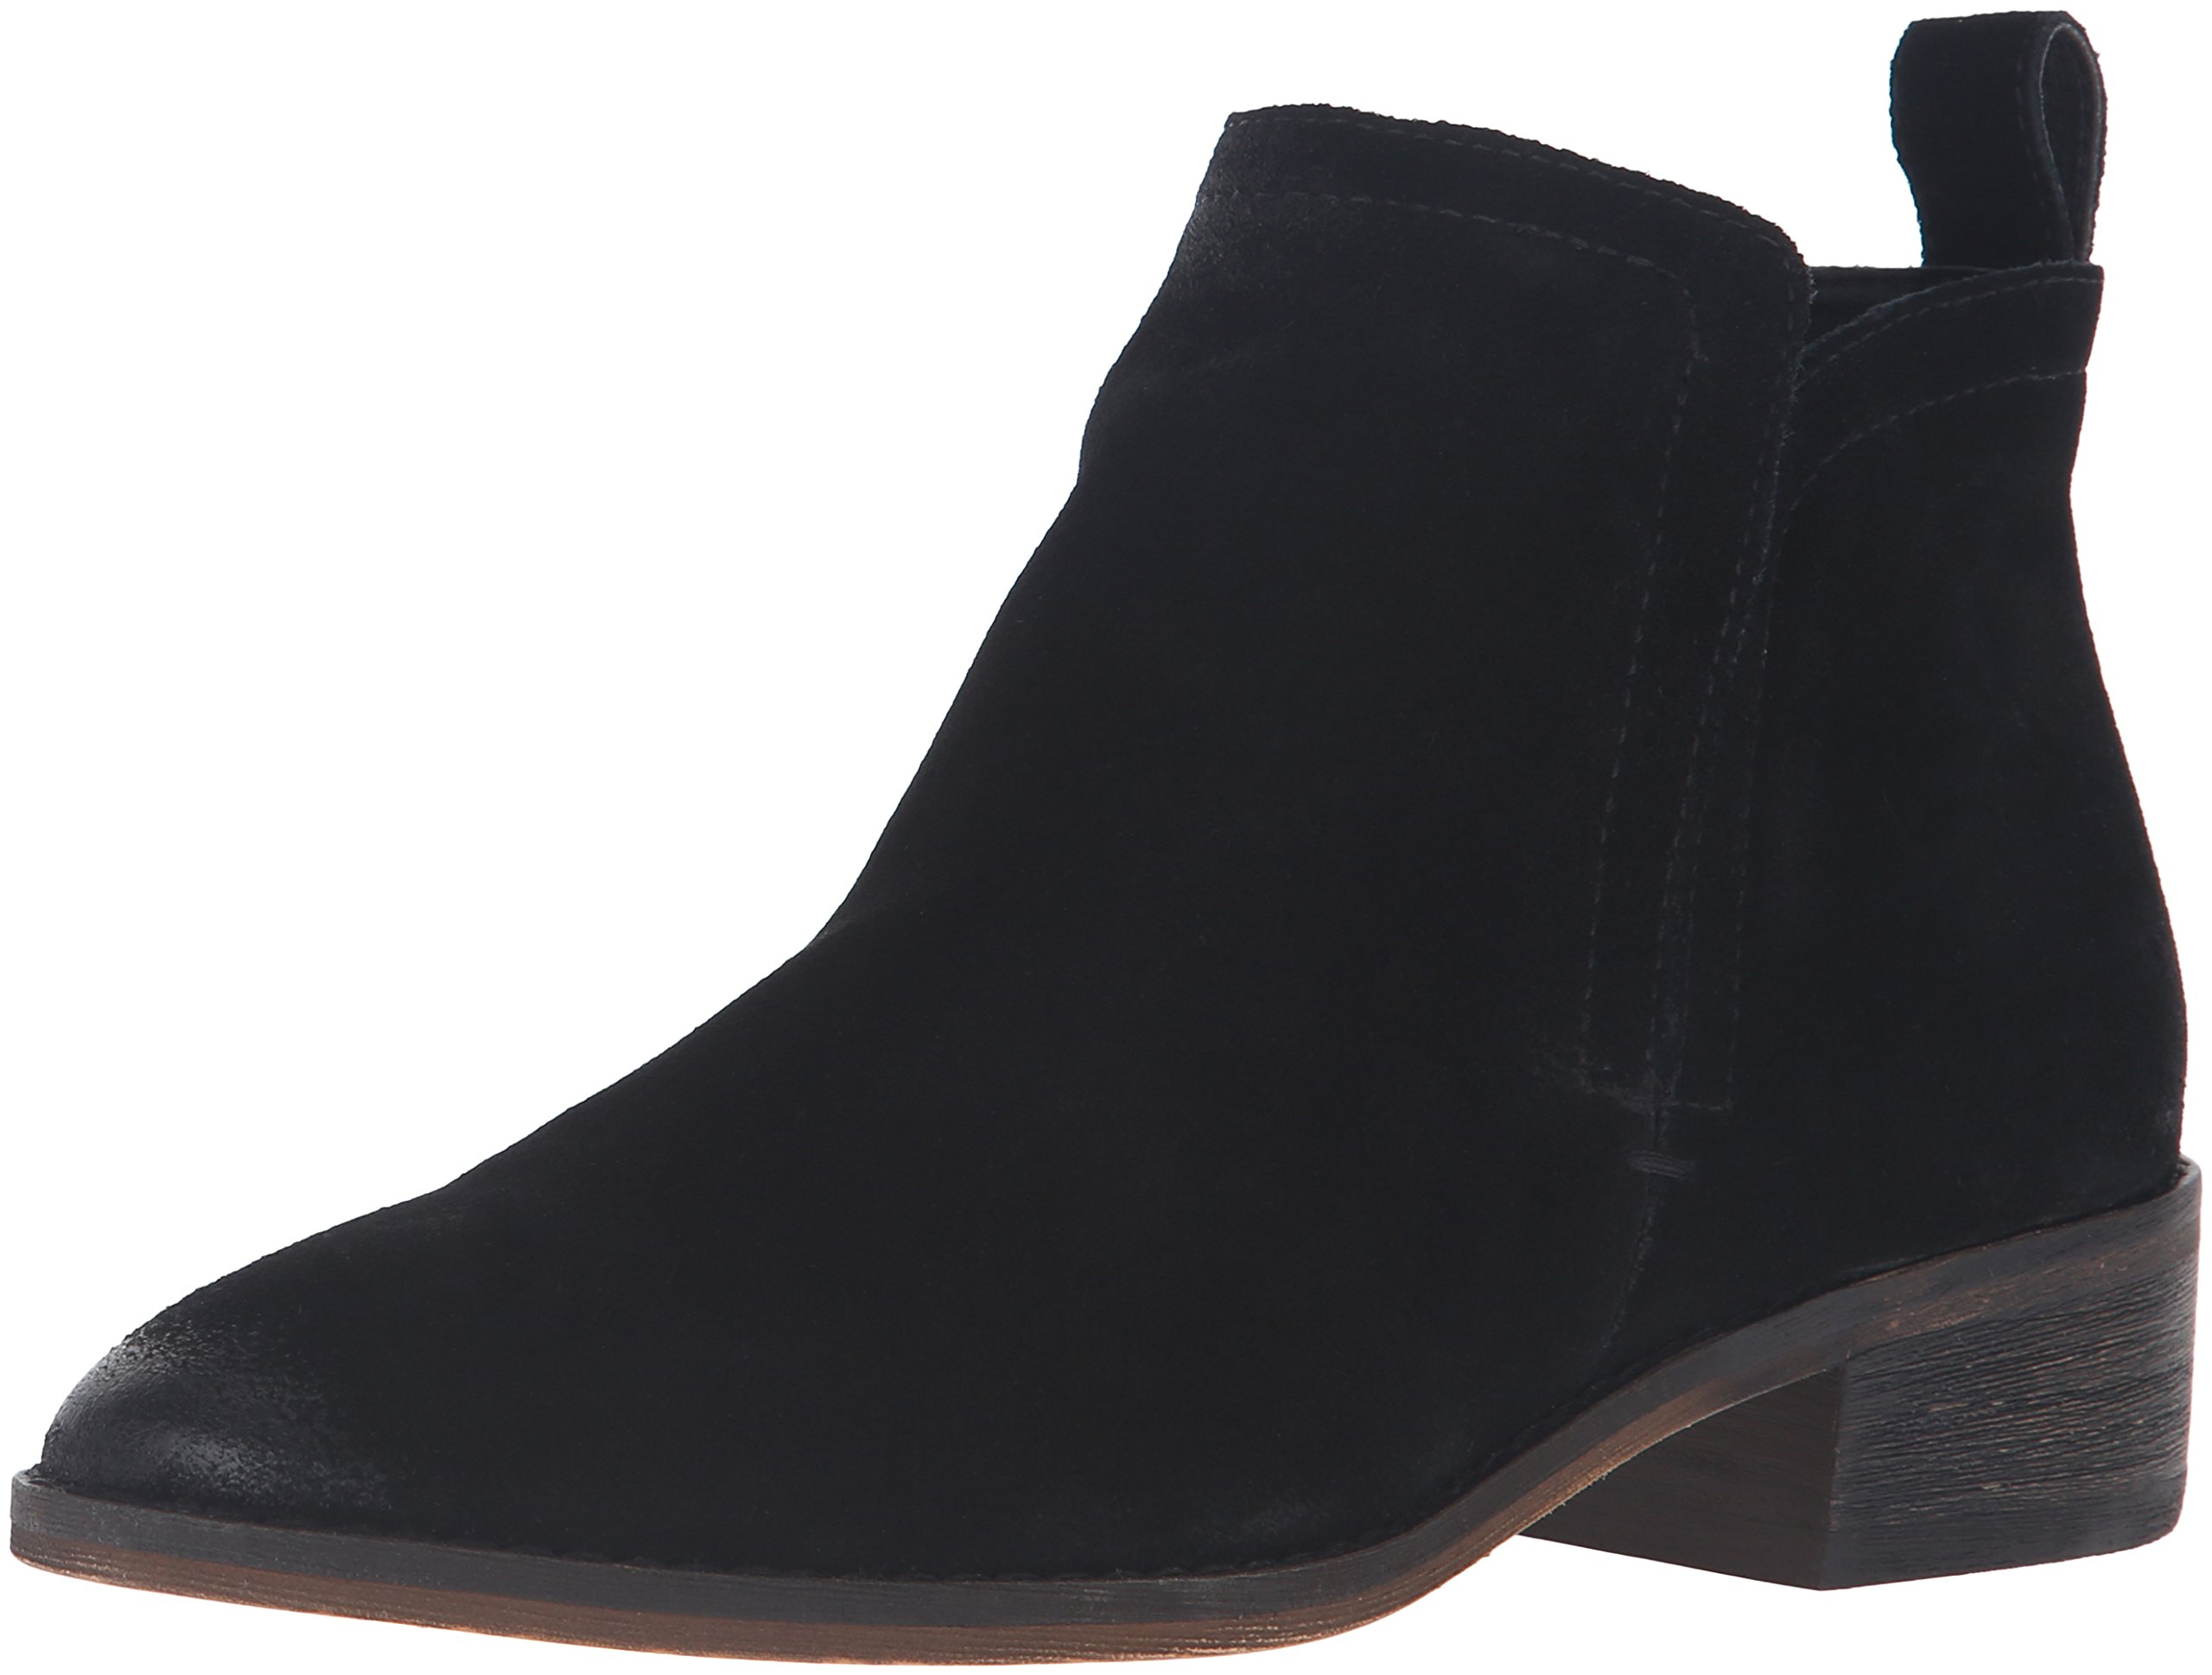 Dolce Vita Women's Tessey Ankle Bootie, Onyx Suede, 7 UK/7 M US